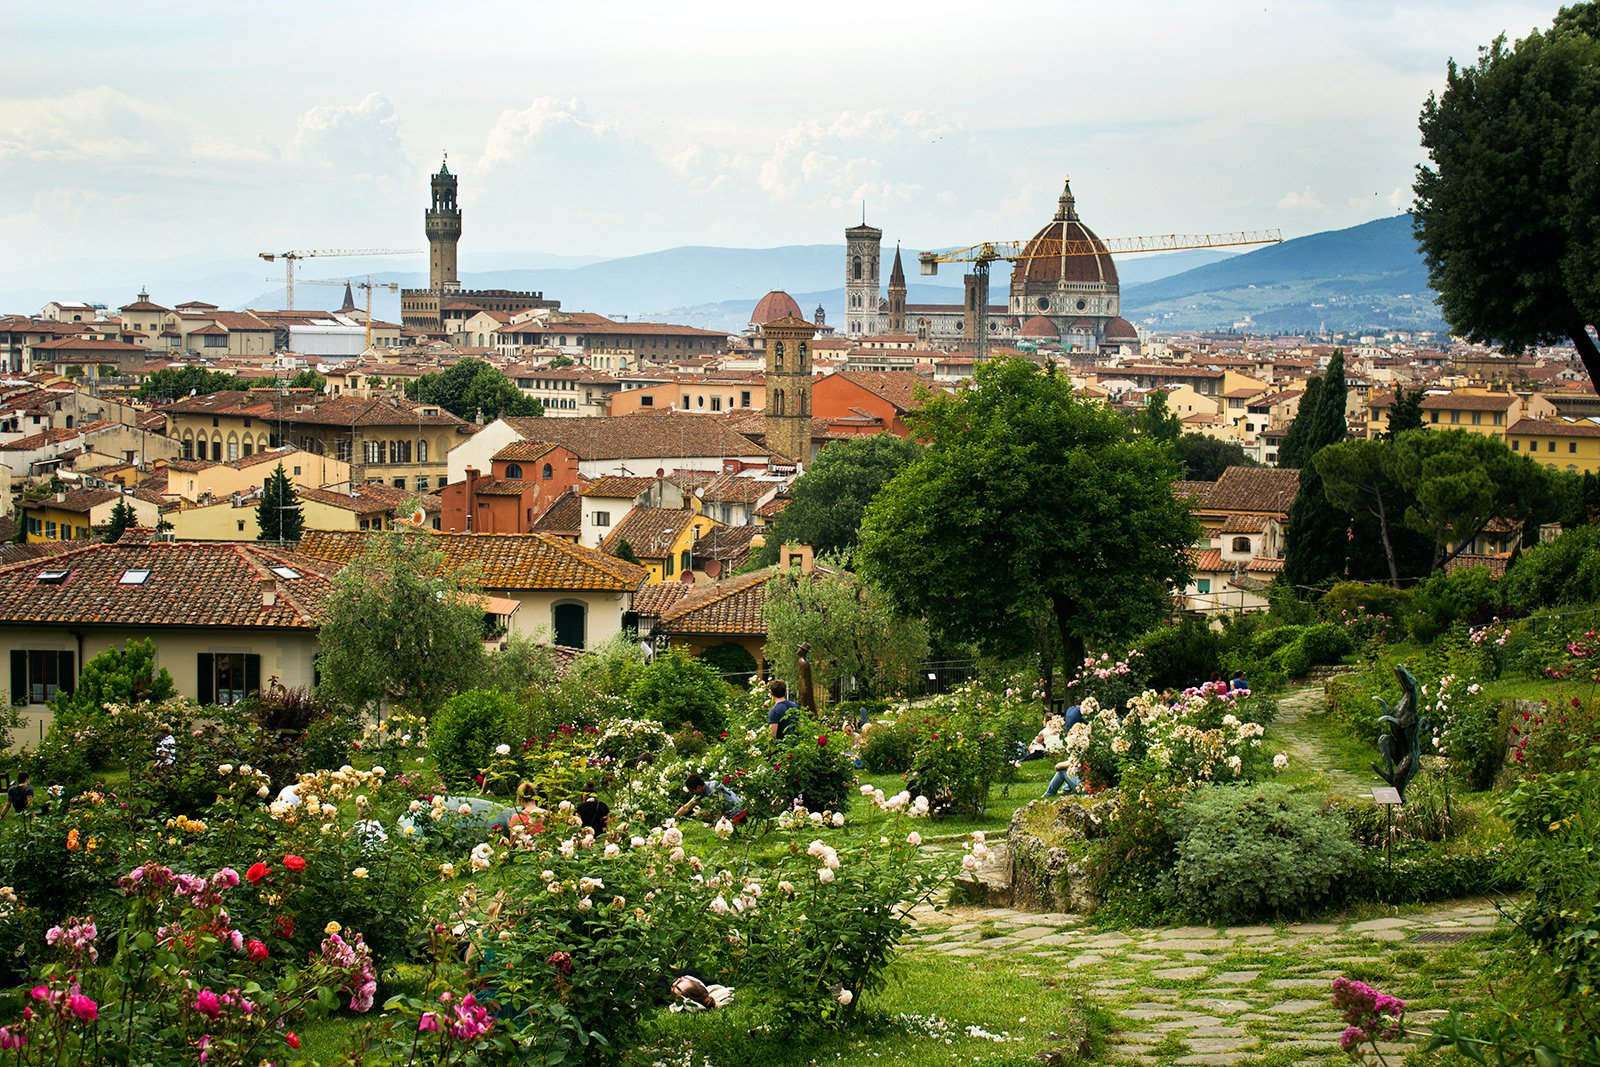 How to walk on the terraces of Rose Garden in Florence